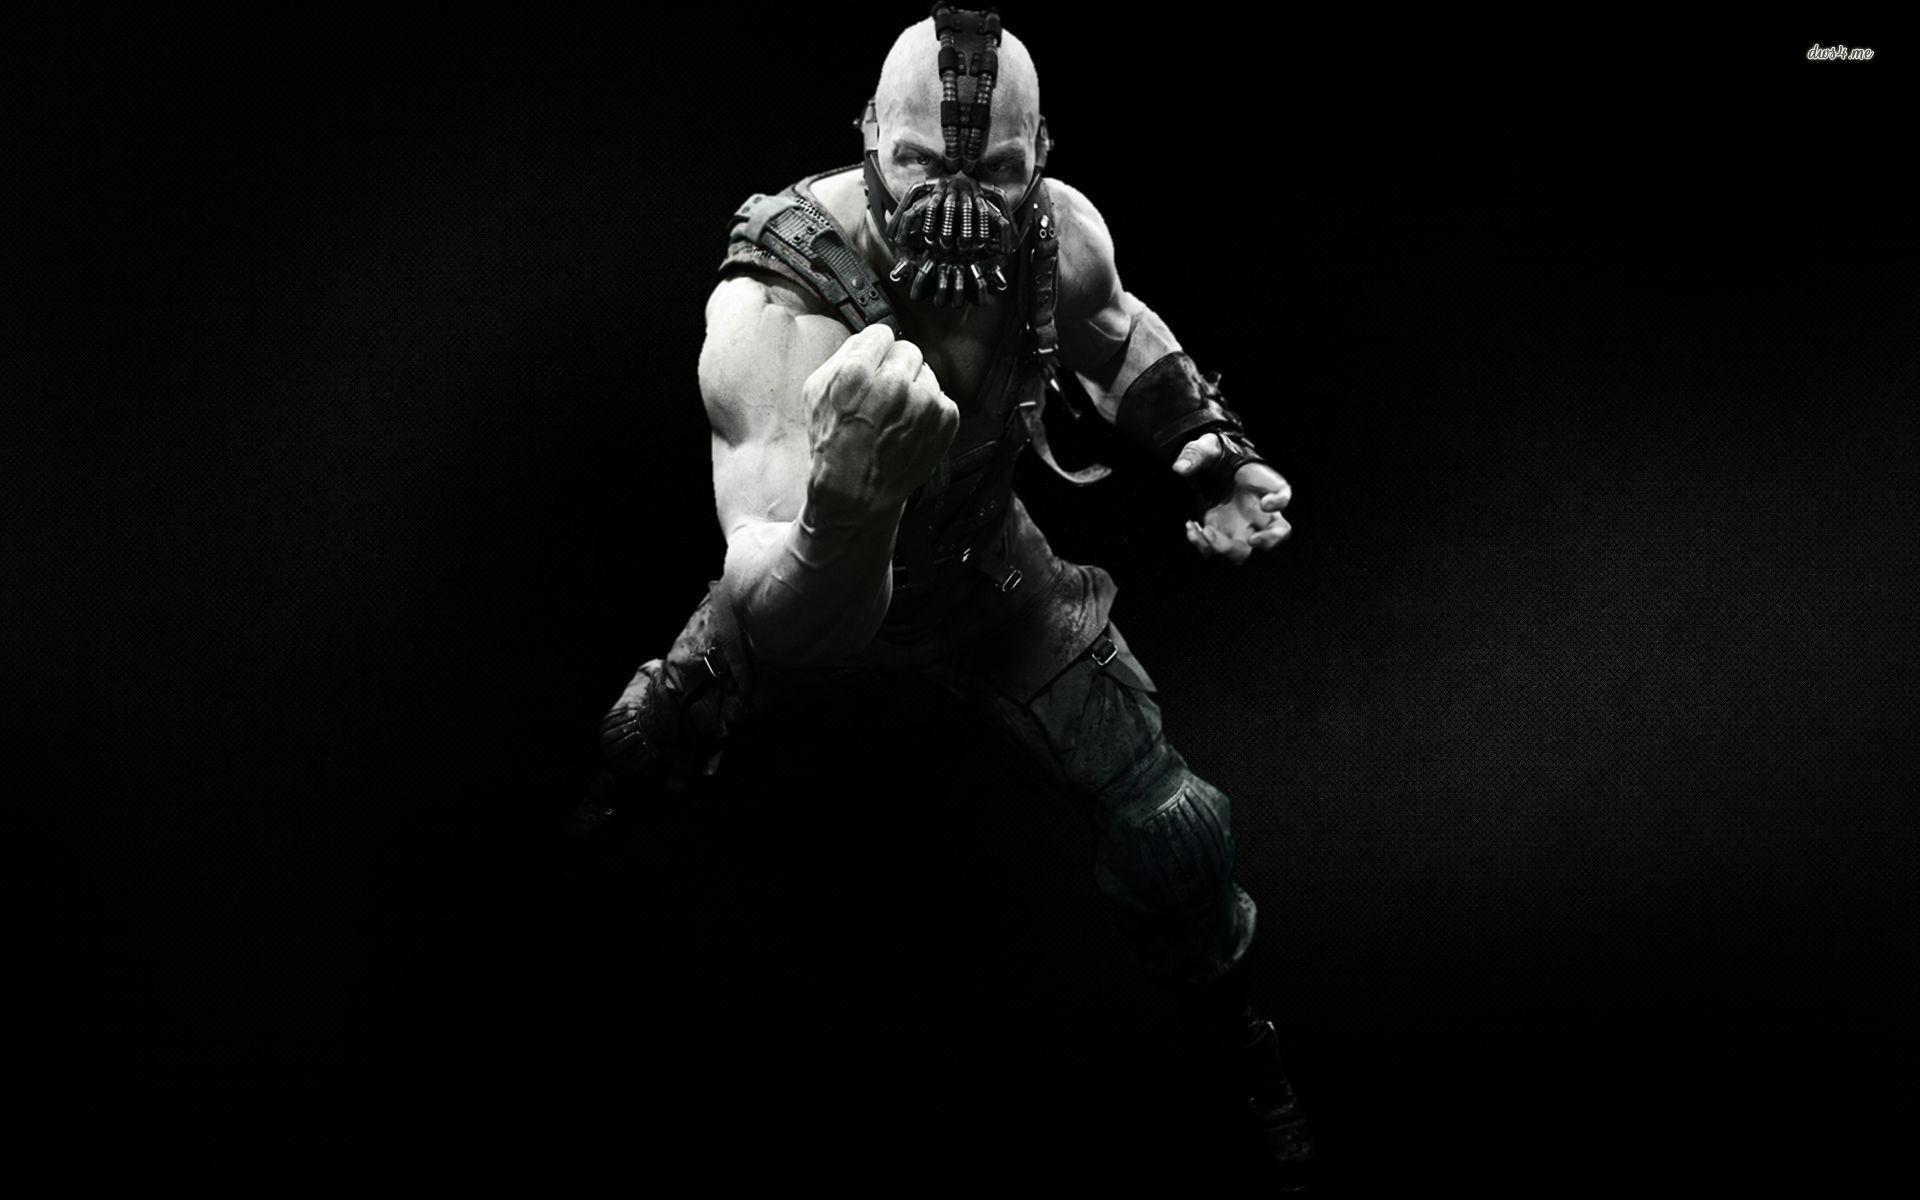 Tom Hardy Bane - wallpaper.